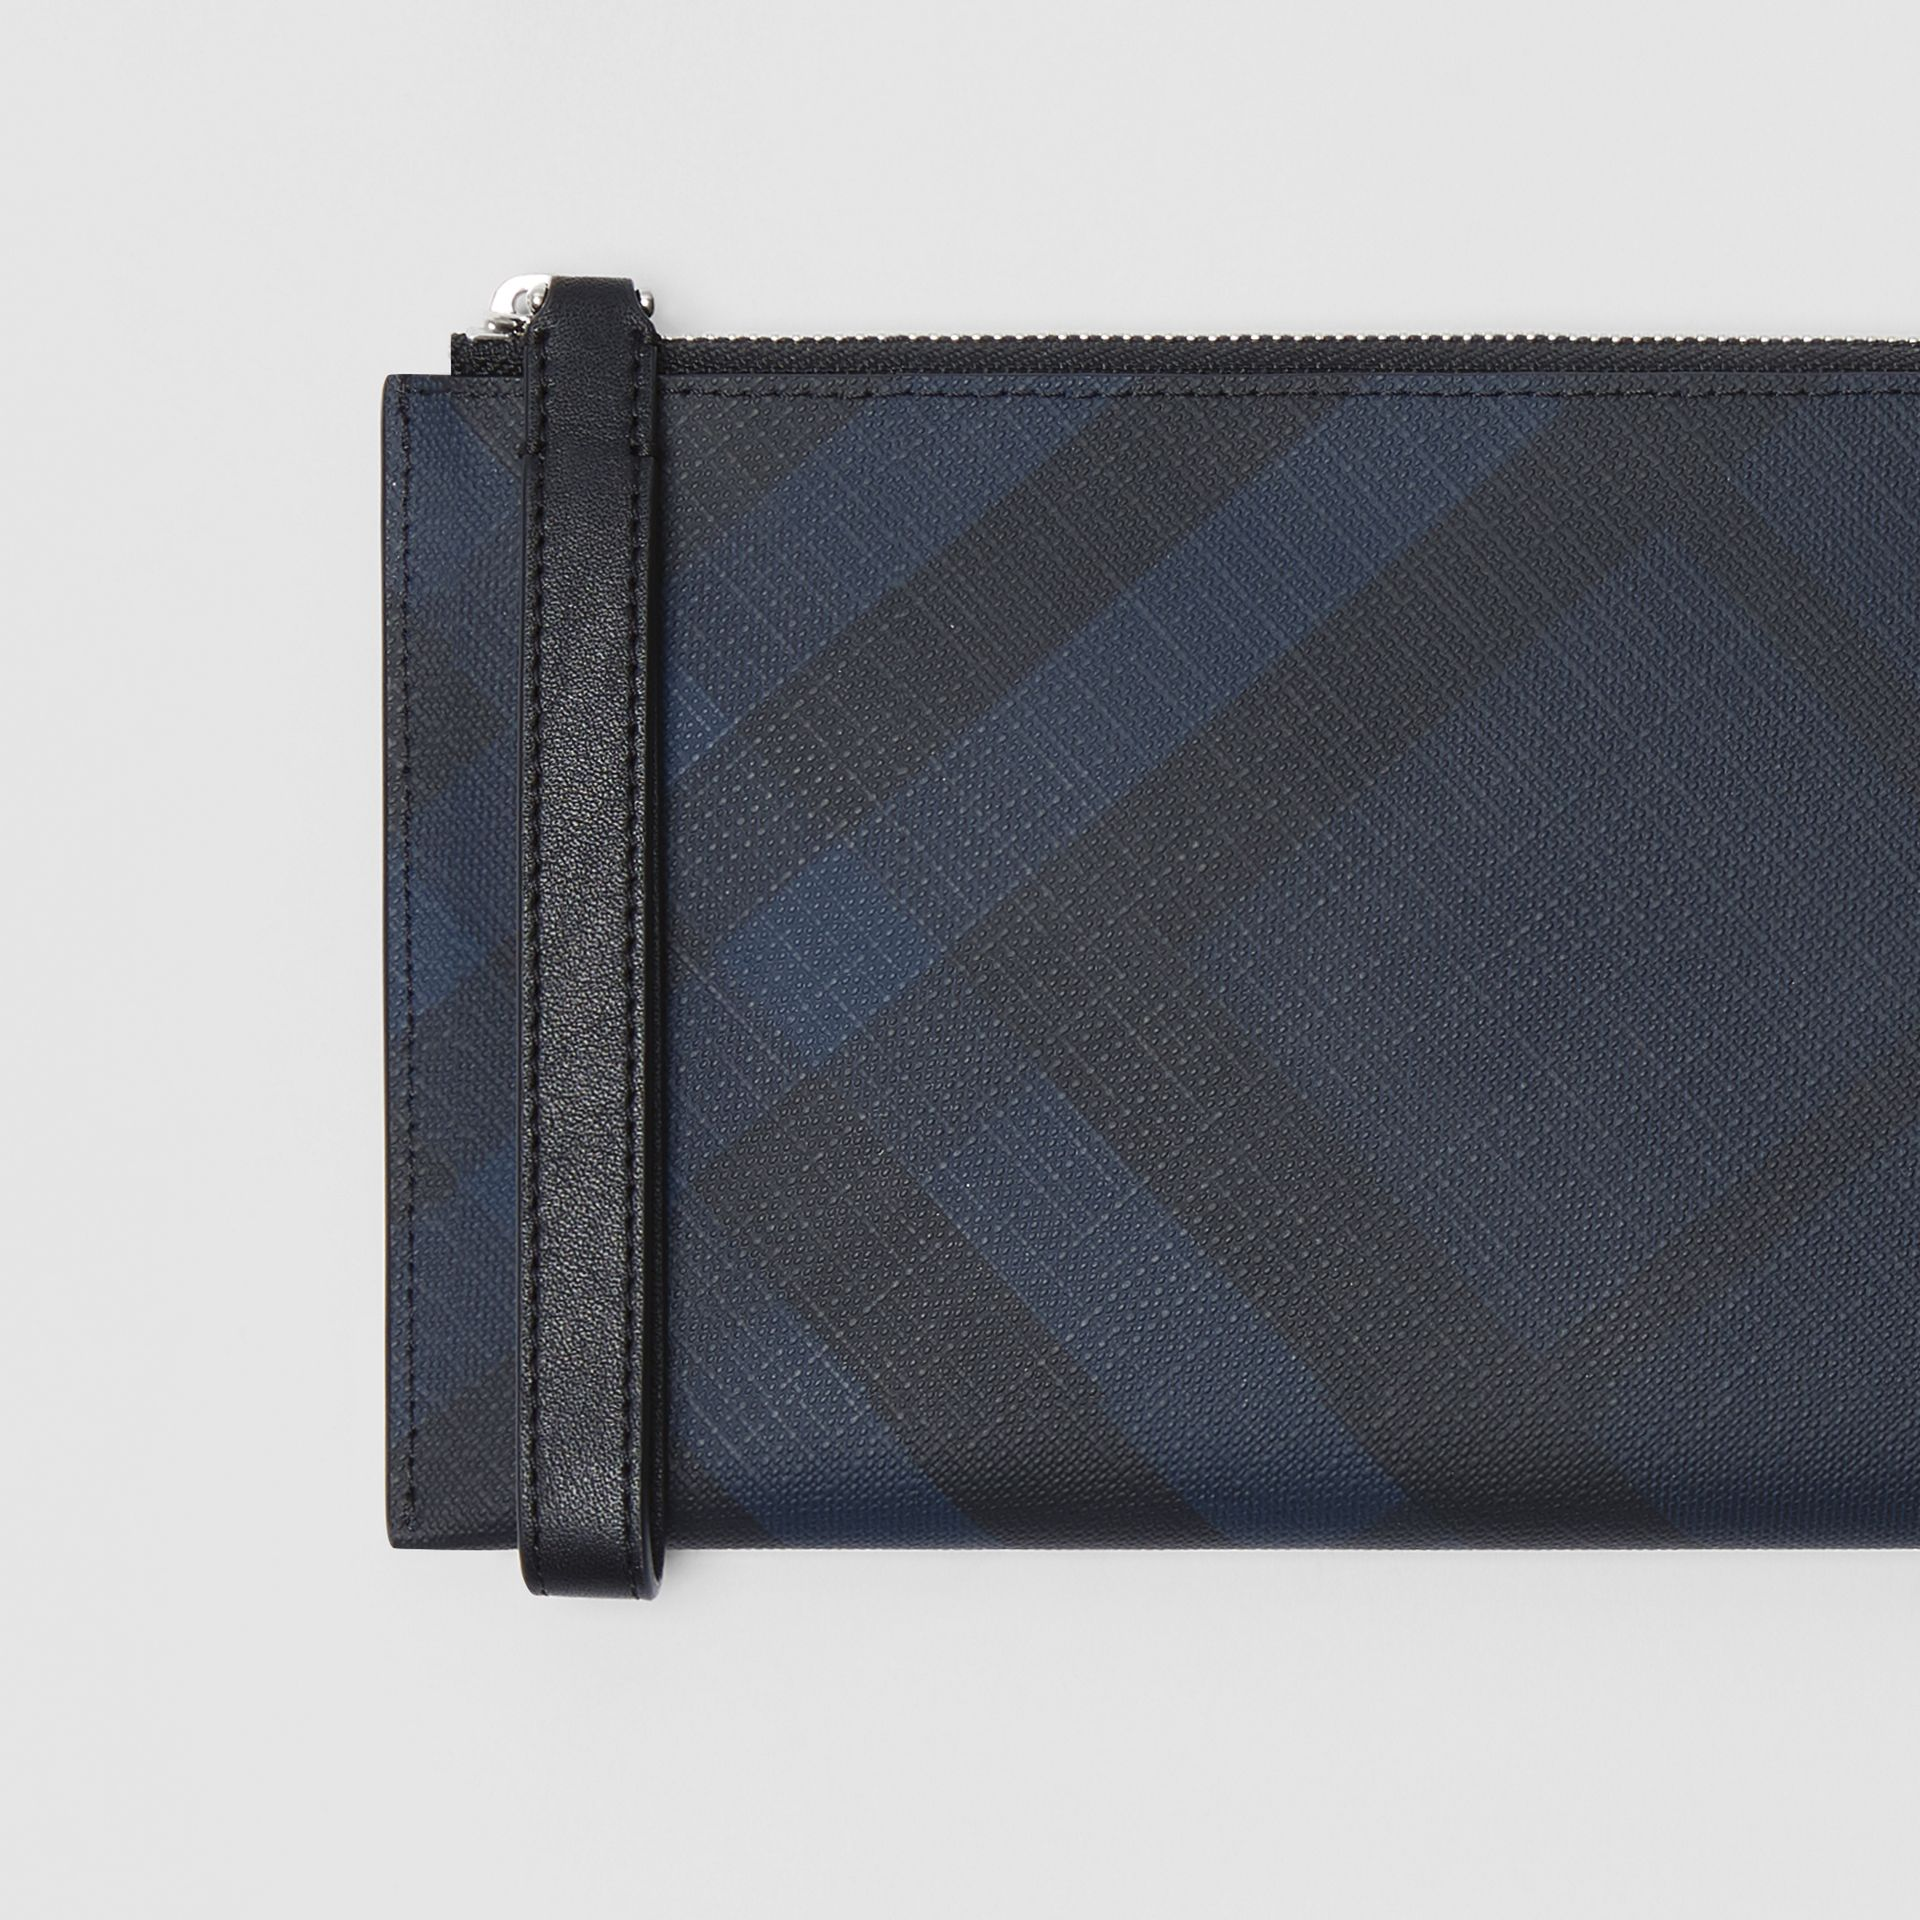 London Check and Leather Travel Wallet in Navy/black - Men | Burberry - gallery image 1